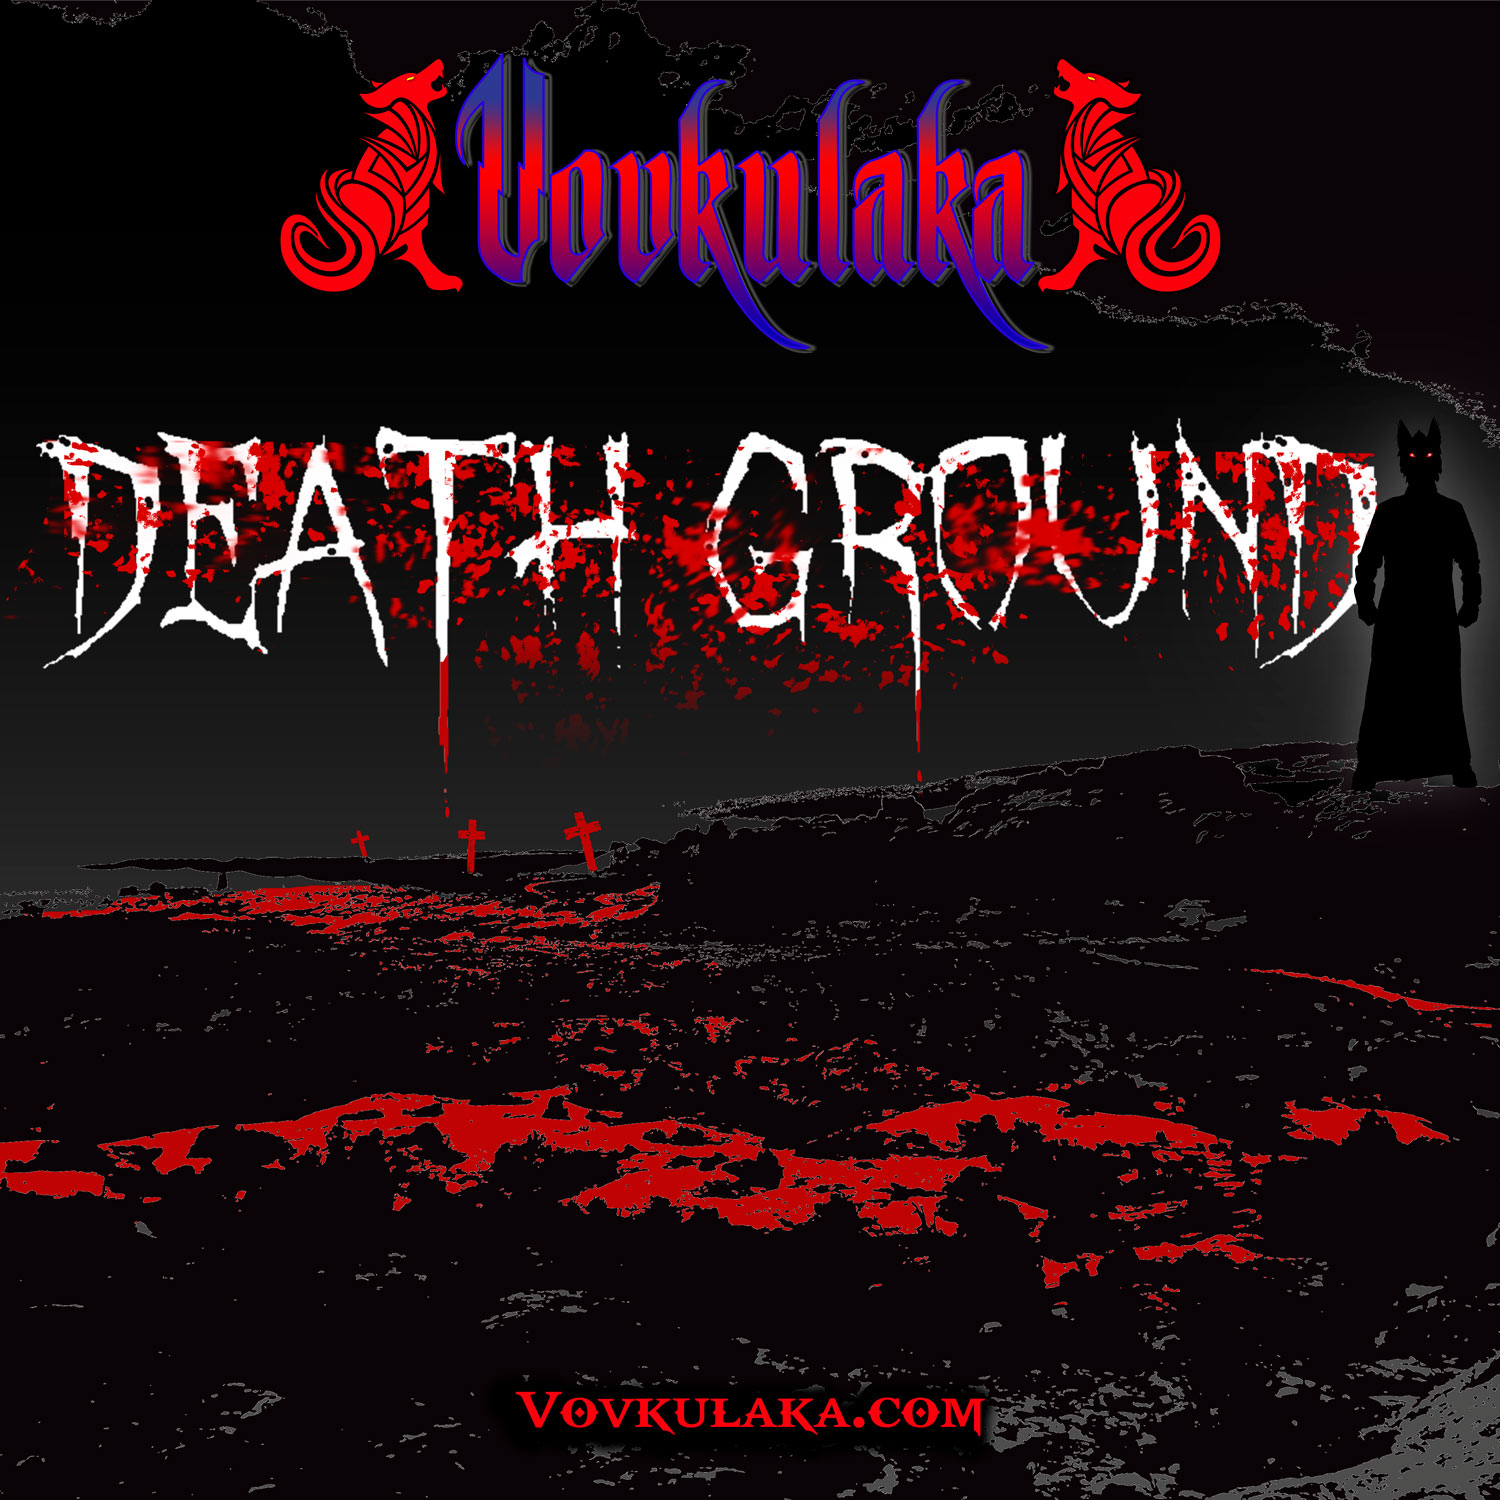 Vovkulaka deathground-01square-a.jpg